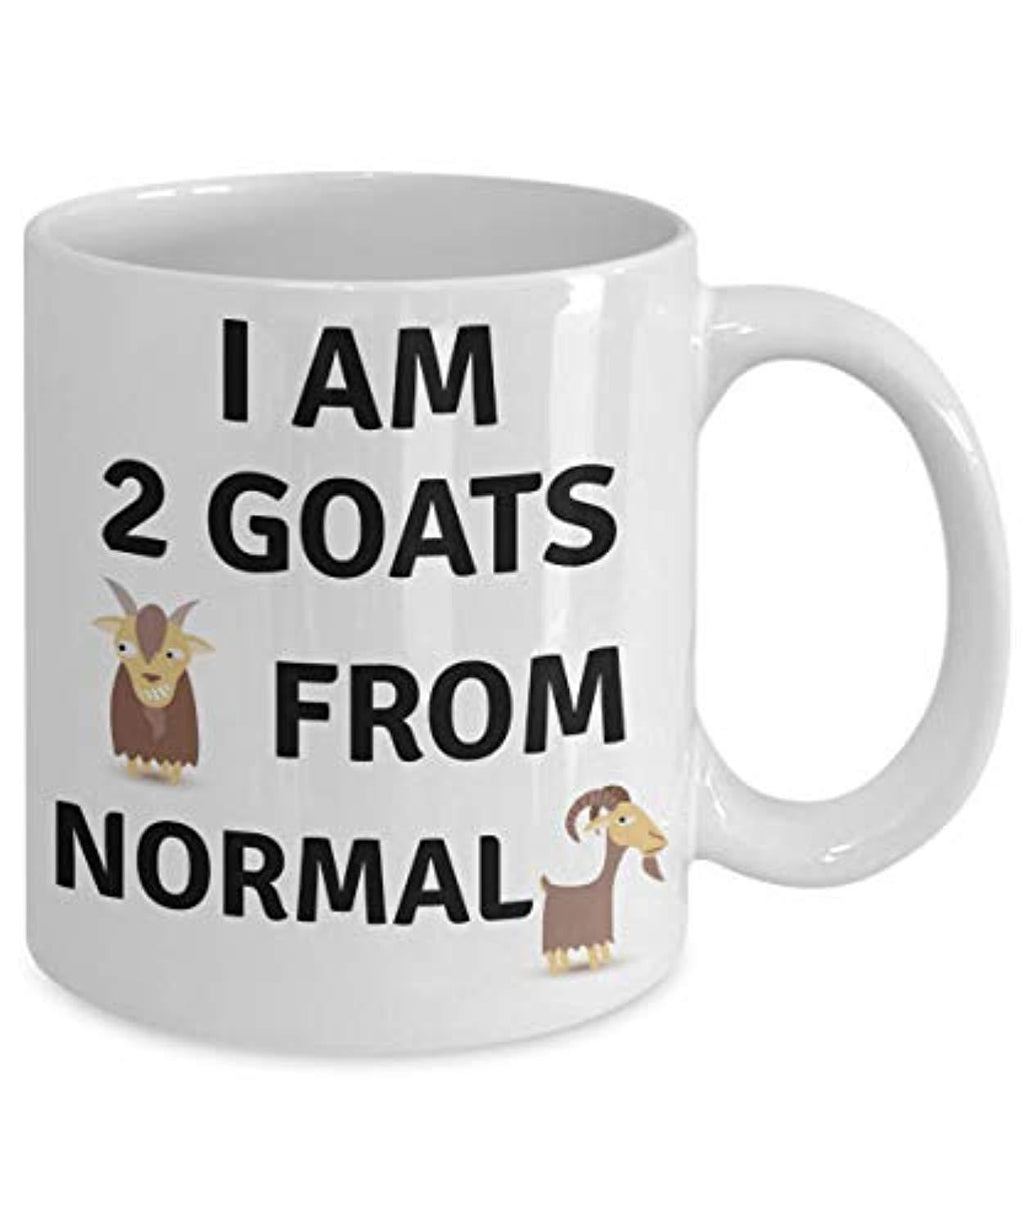 I Am 2 Goats from normal